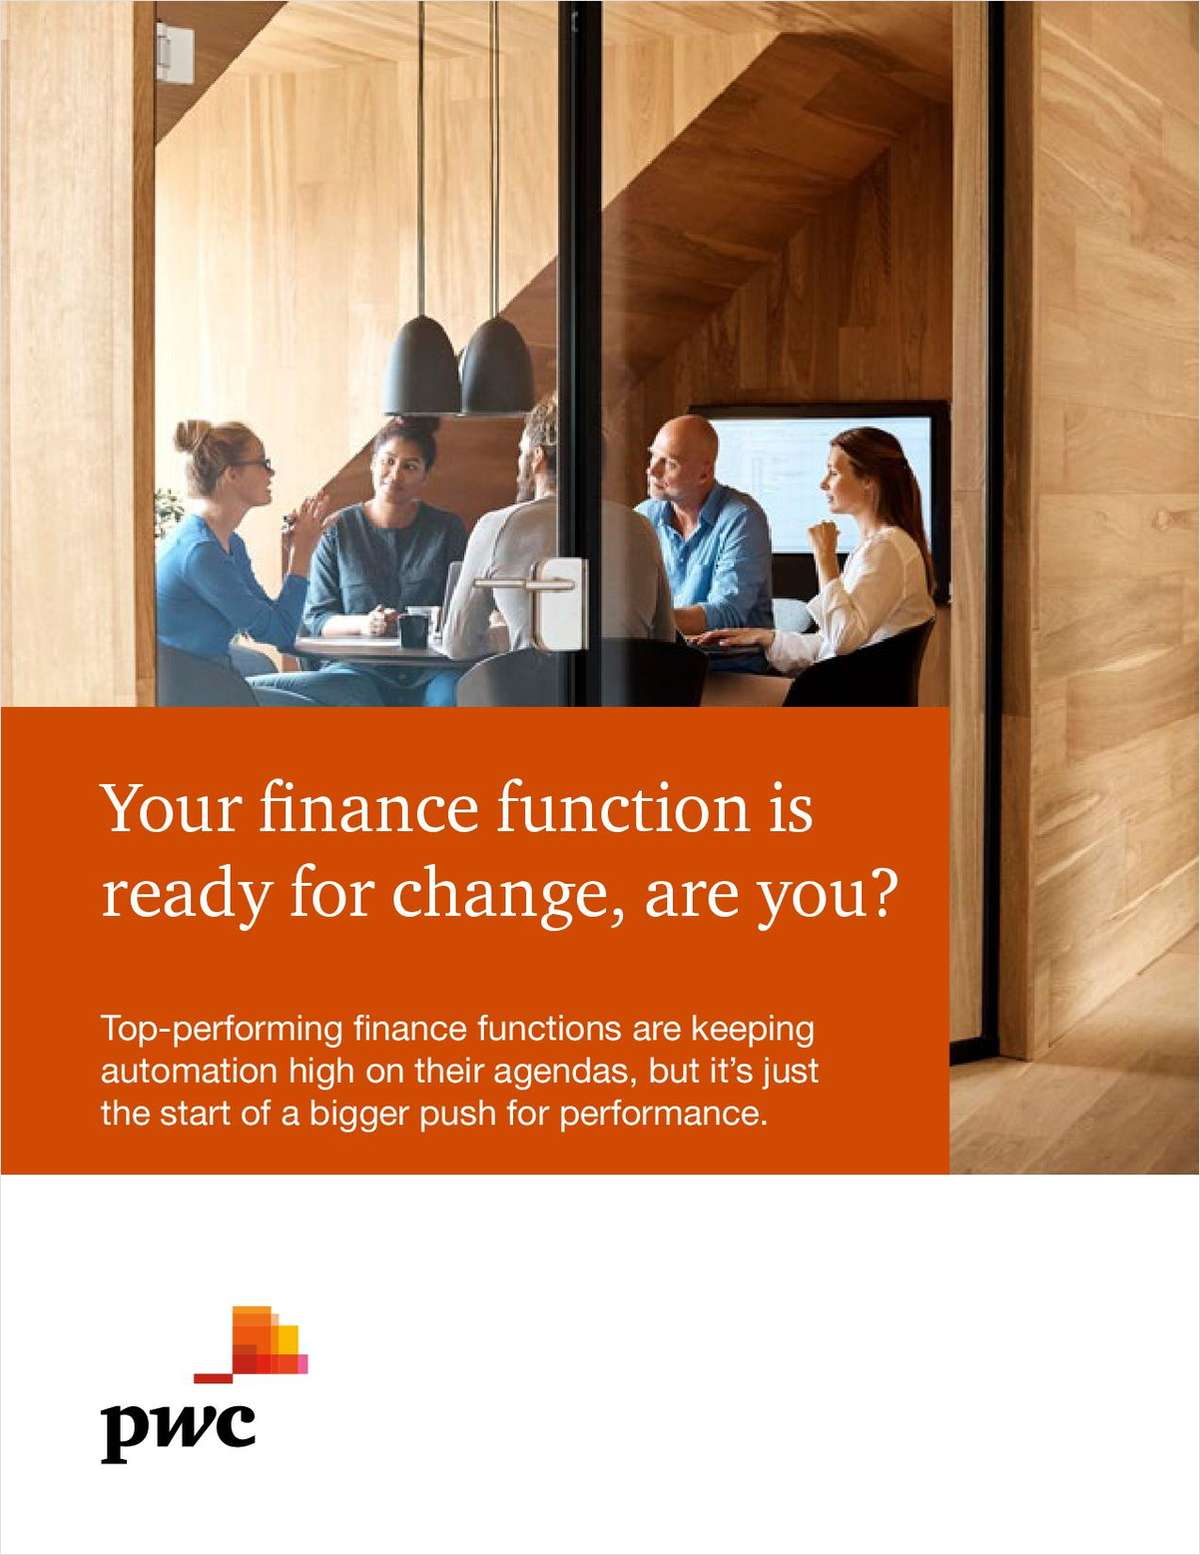 Your Finance Function Is Ready for Change, Are You?